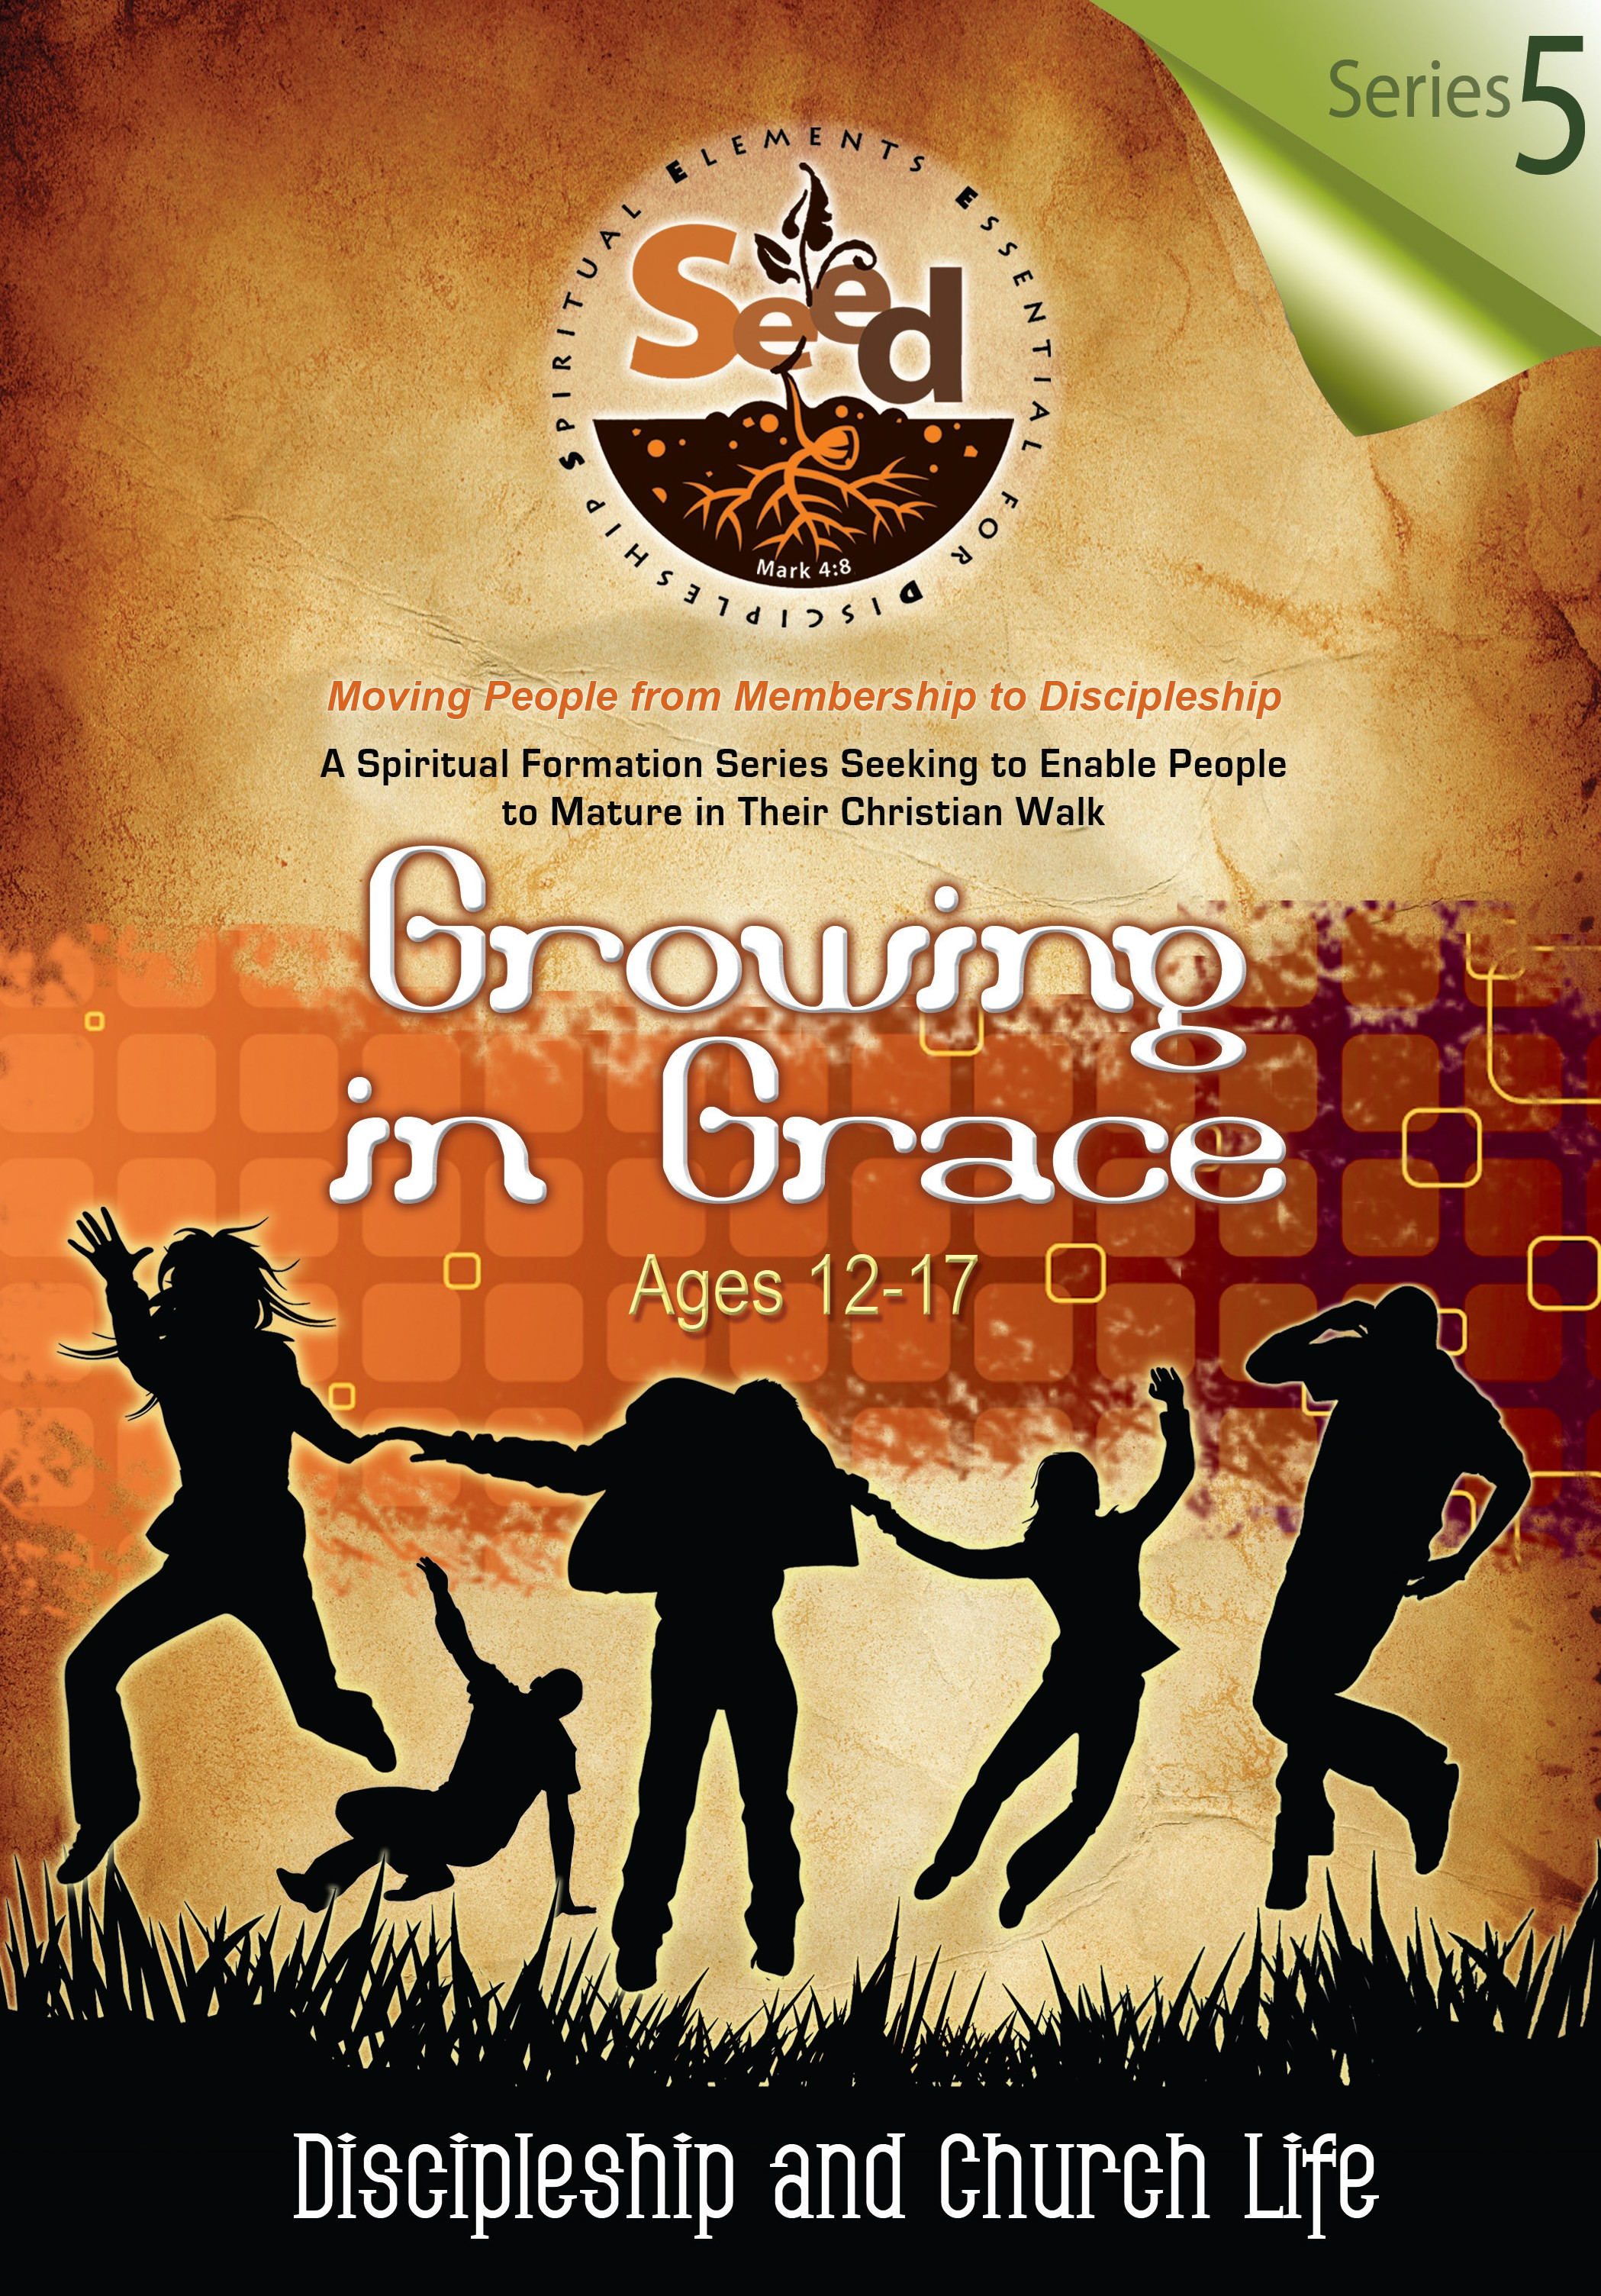 SEED Growing in Grace (Ages 12-17): Series 5: Discipleship and Church Life